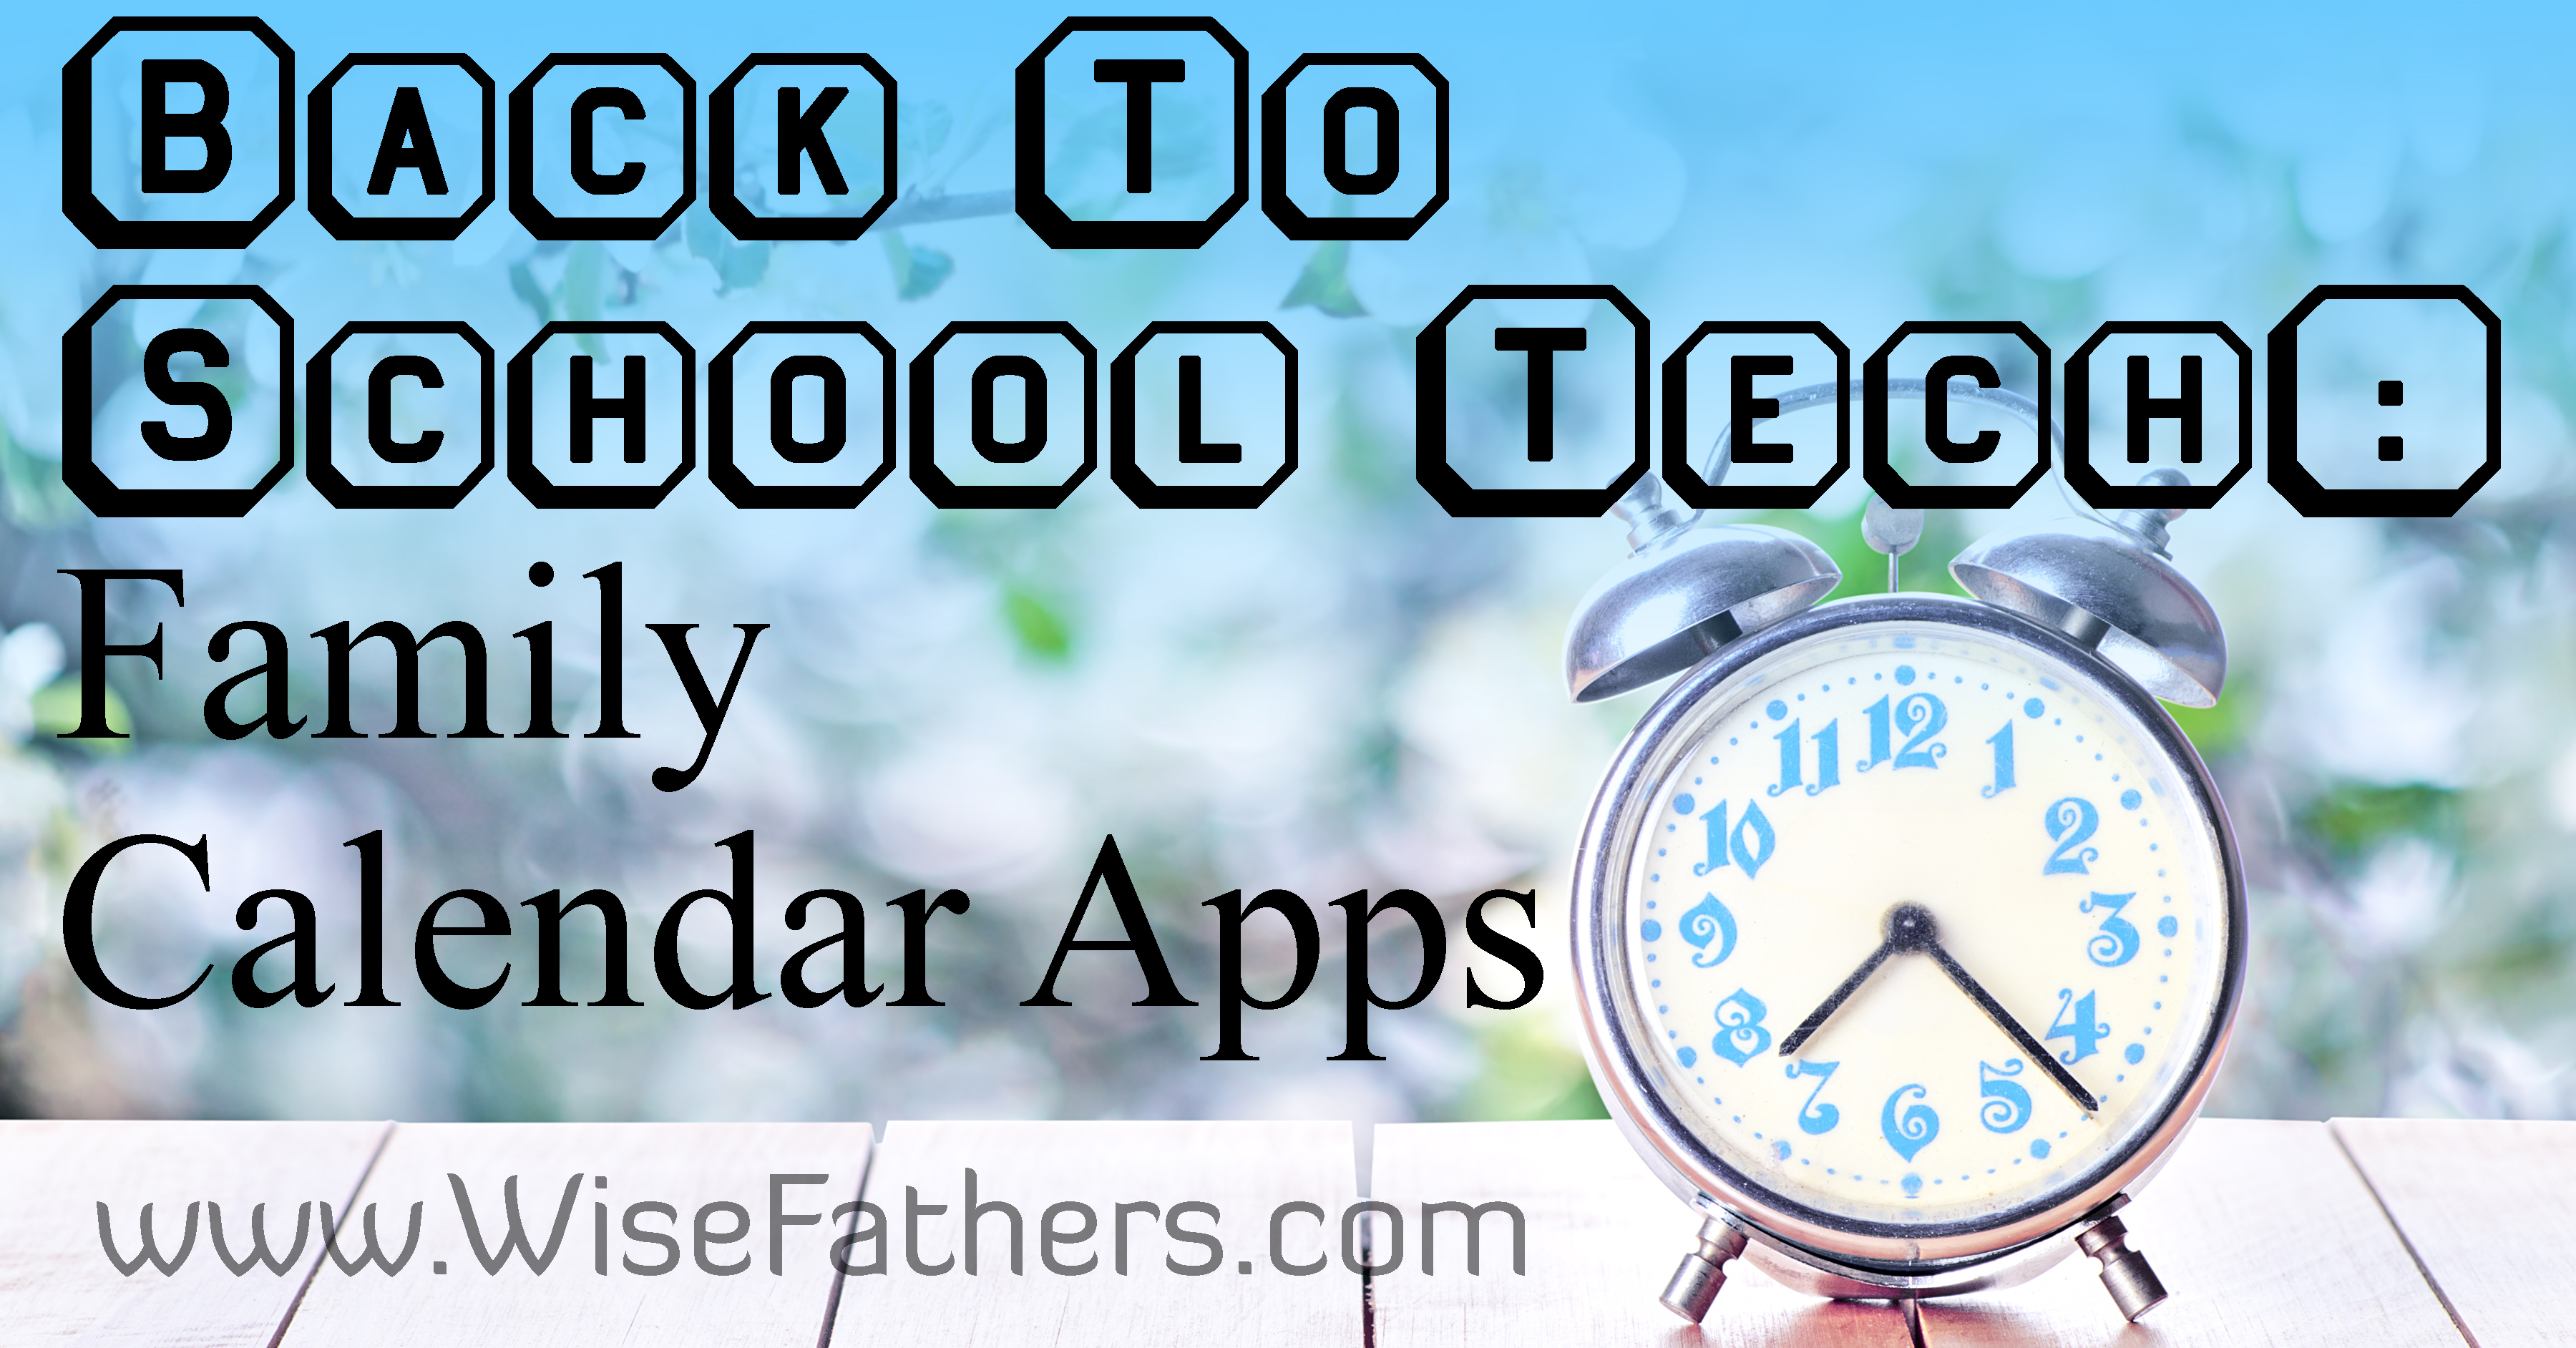 Back To School Tech: Family Calendar Apps